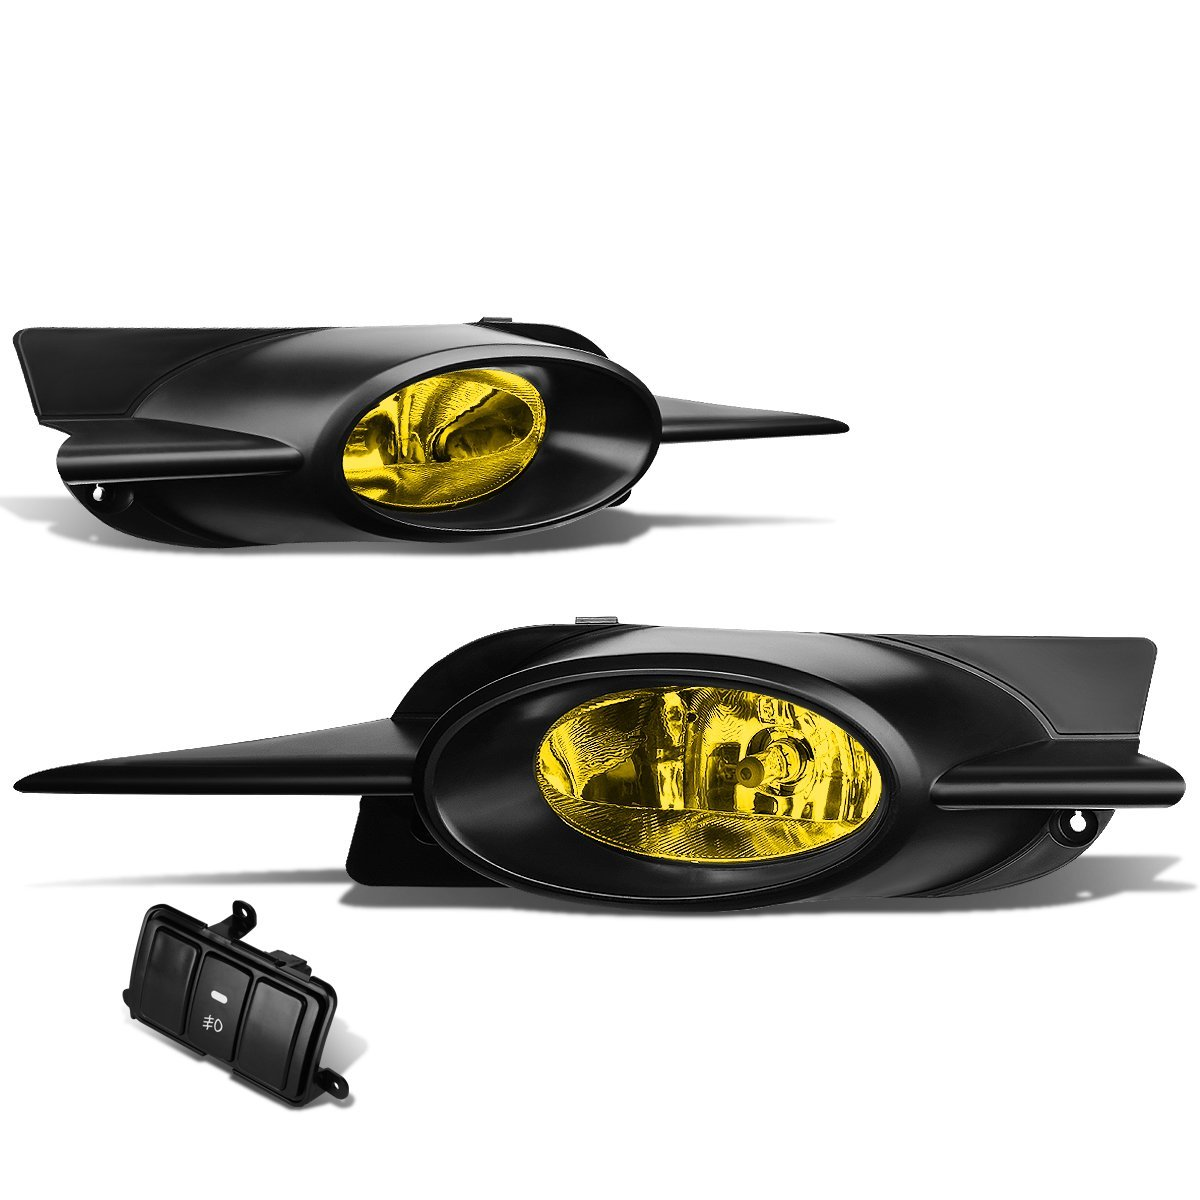 09 11 Honda Civic Coupe FG1/2 Pair Of Bumper Driving Fog Lights + Wiring  Kit + Switch   Yellow Lens